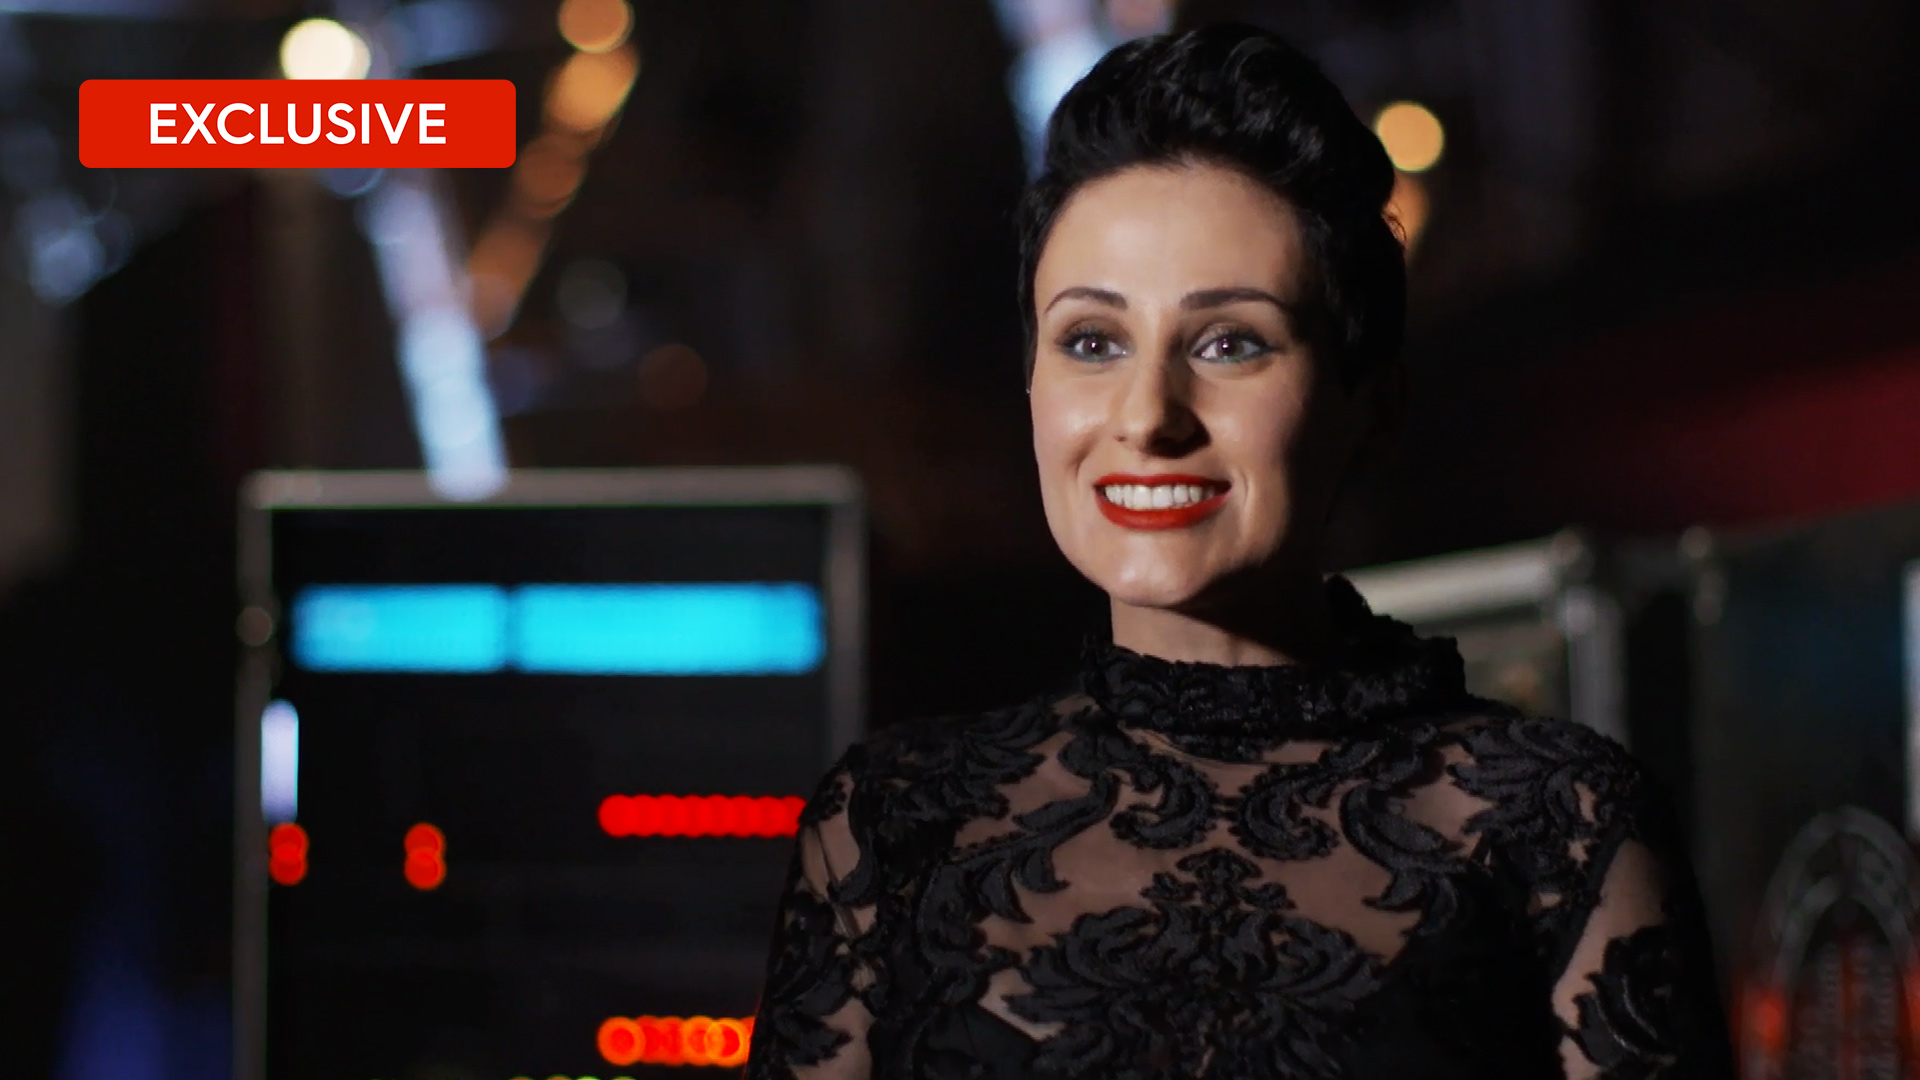 Blinds Backstage Exclusive: Diana Rouvas